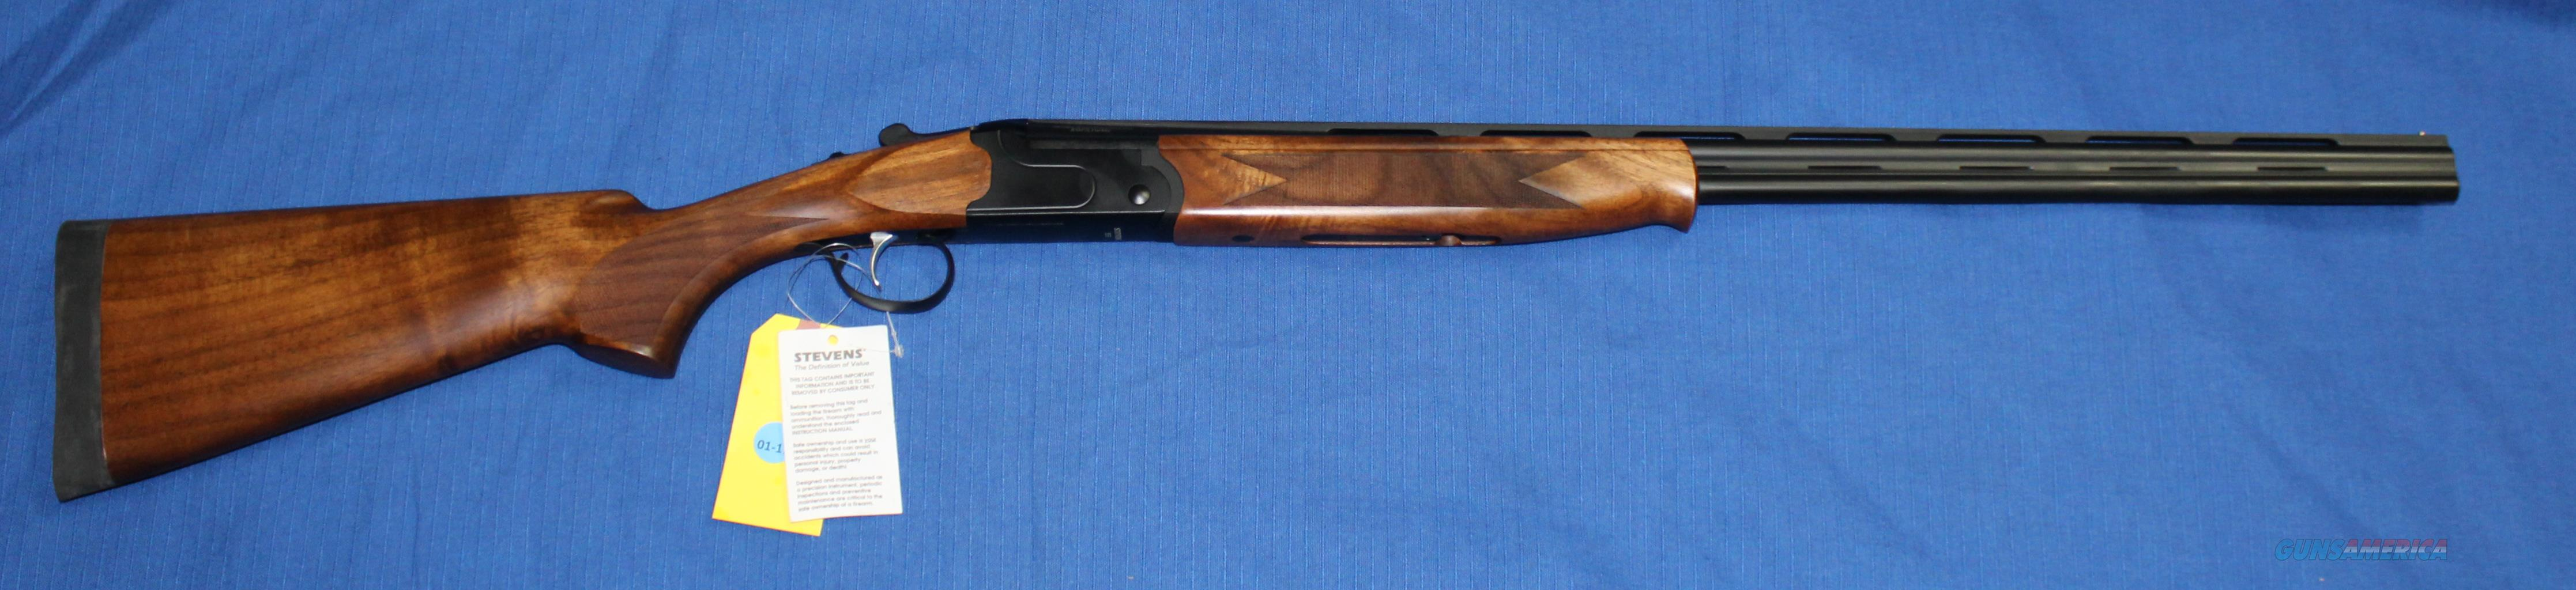 SAVAGE 555 410 GAUGE OVER/UNDER FIVE CHOKE TUBES BLUED WITH TURKISH  CHECKERED WALNUT NEW IN BOX